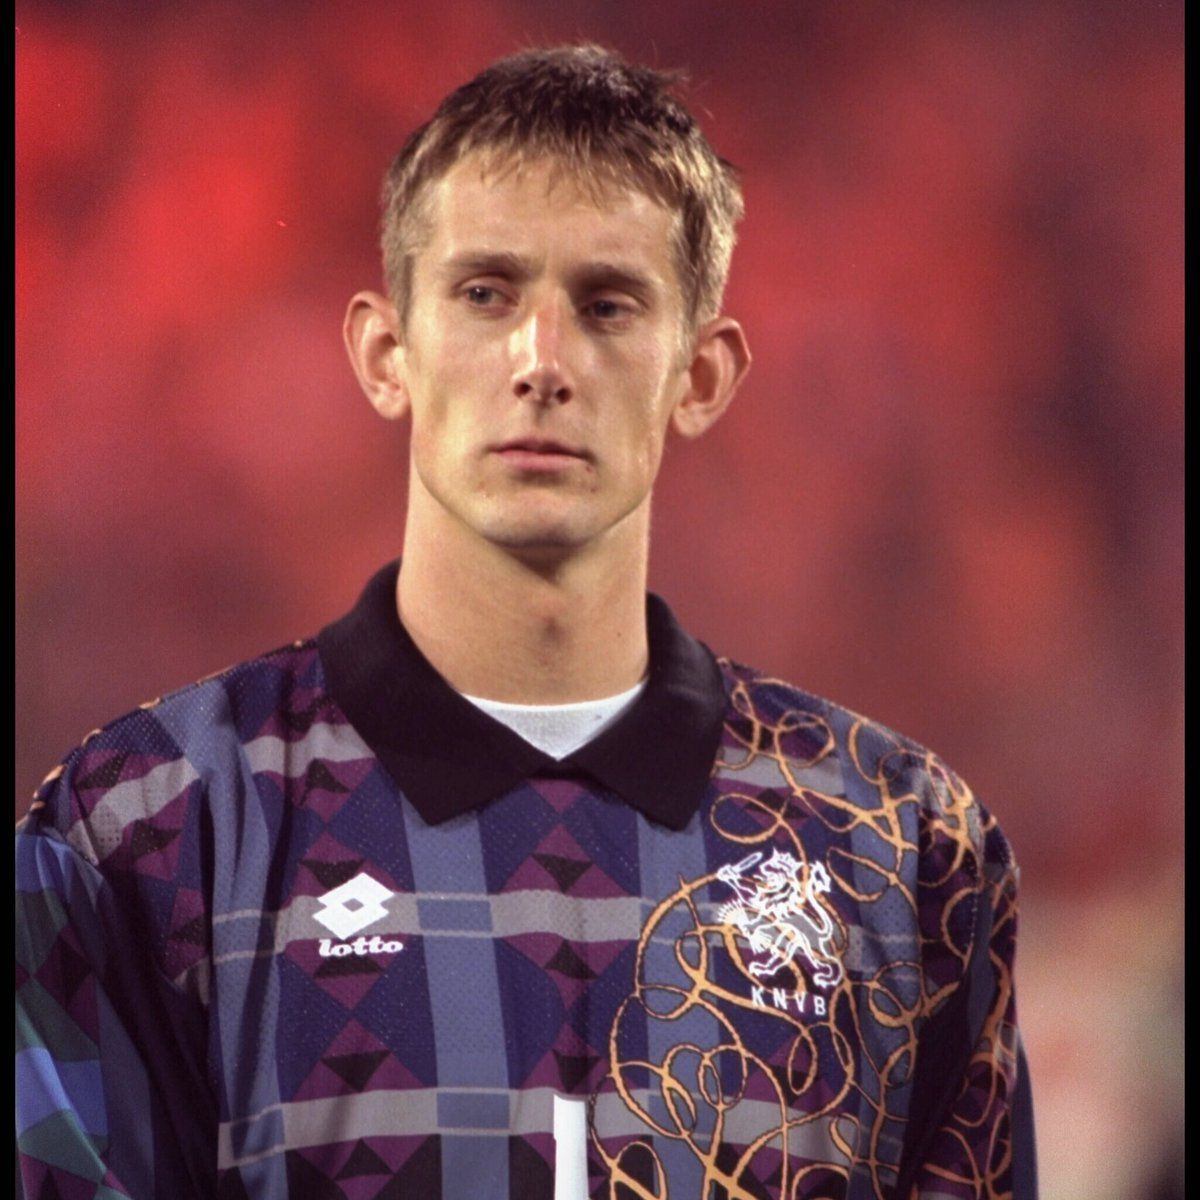 🧤 Edwin van der Sar made his @OnsOranje debut #OnThisDay in 1995   🇳🇱 He is the second-most capped player in the Netherlands national team's history, kept 72 clean sheets + captained the team 36 times   👏 You also really pulled off the collared shirt look, Edwin https://t.co/7gciy0qnKI